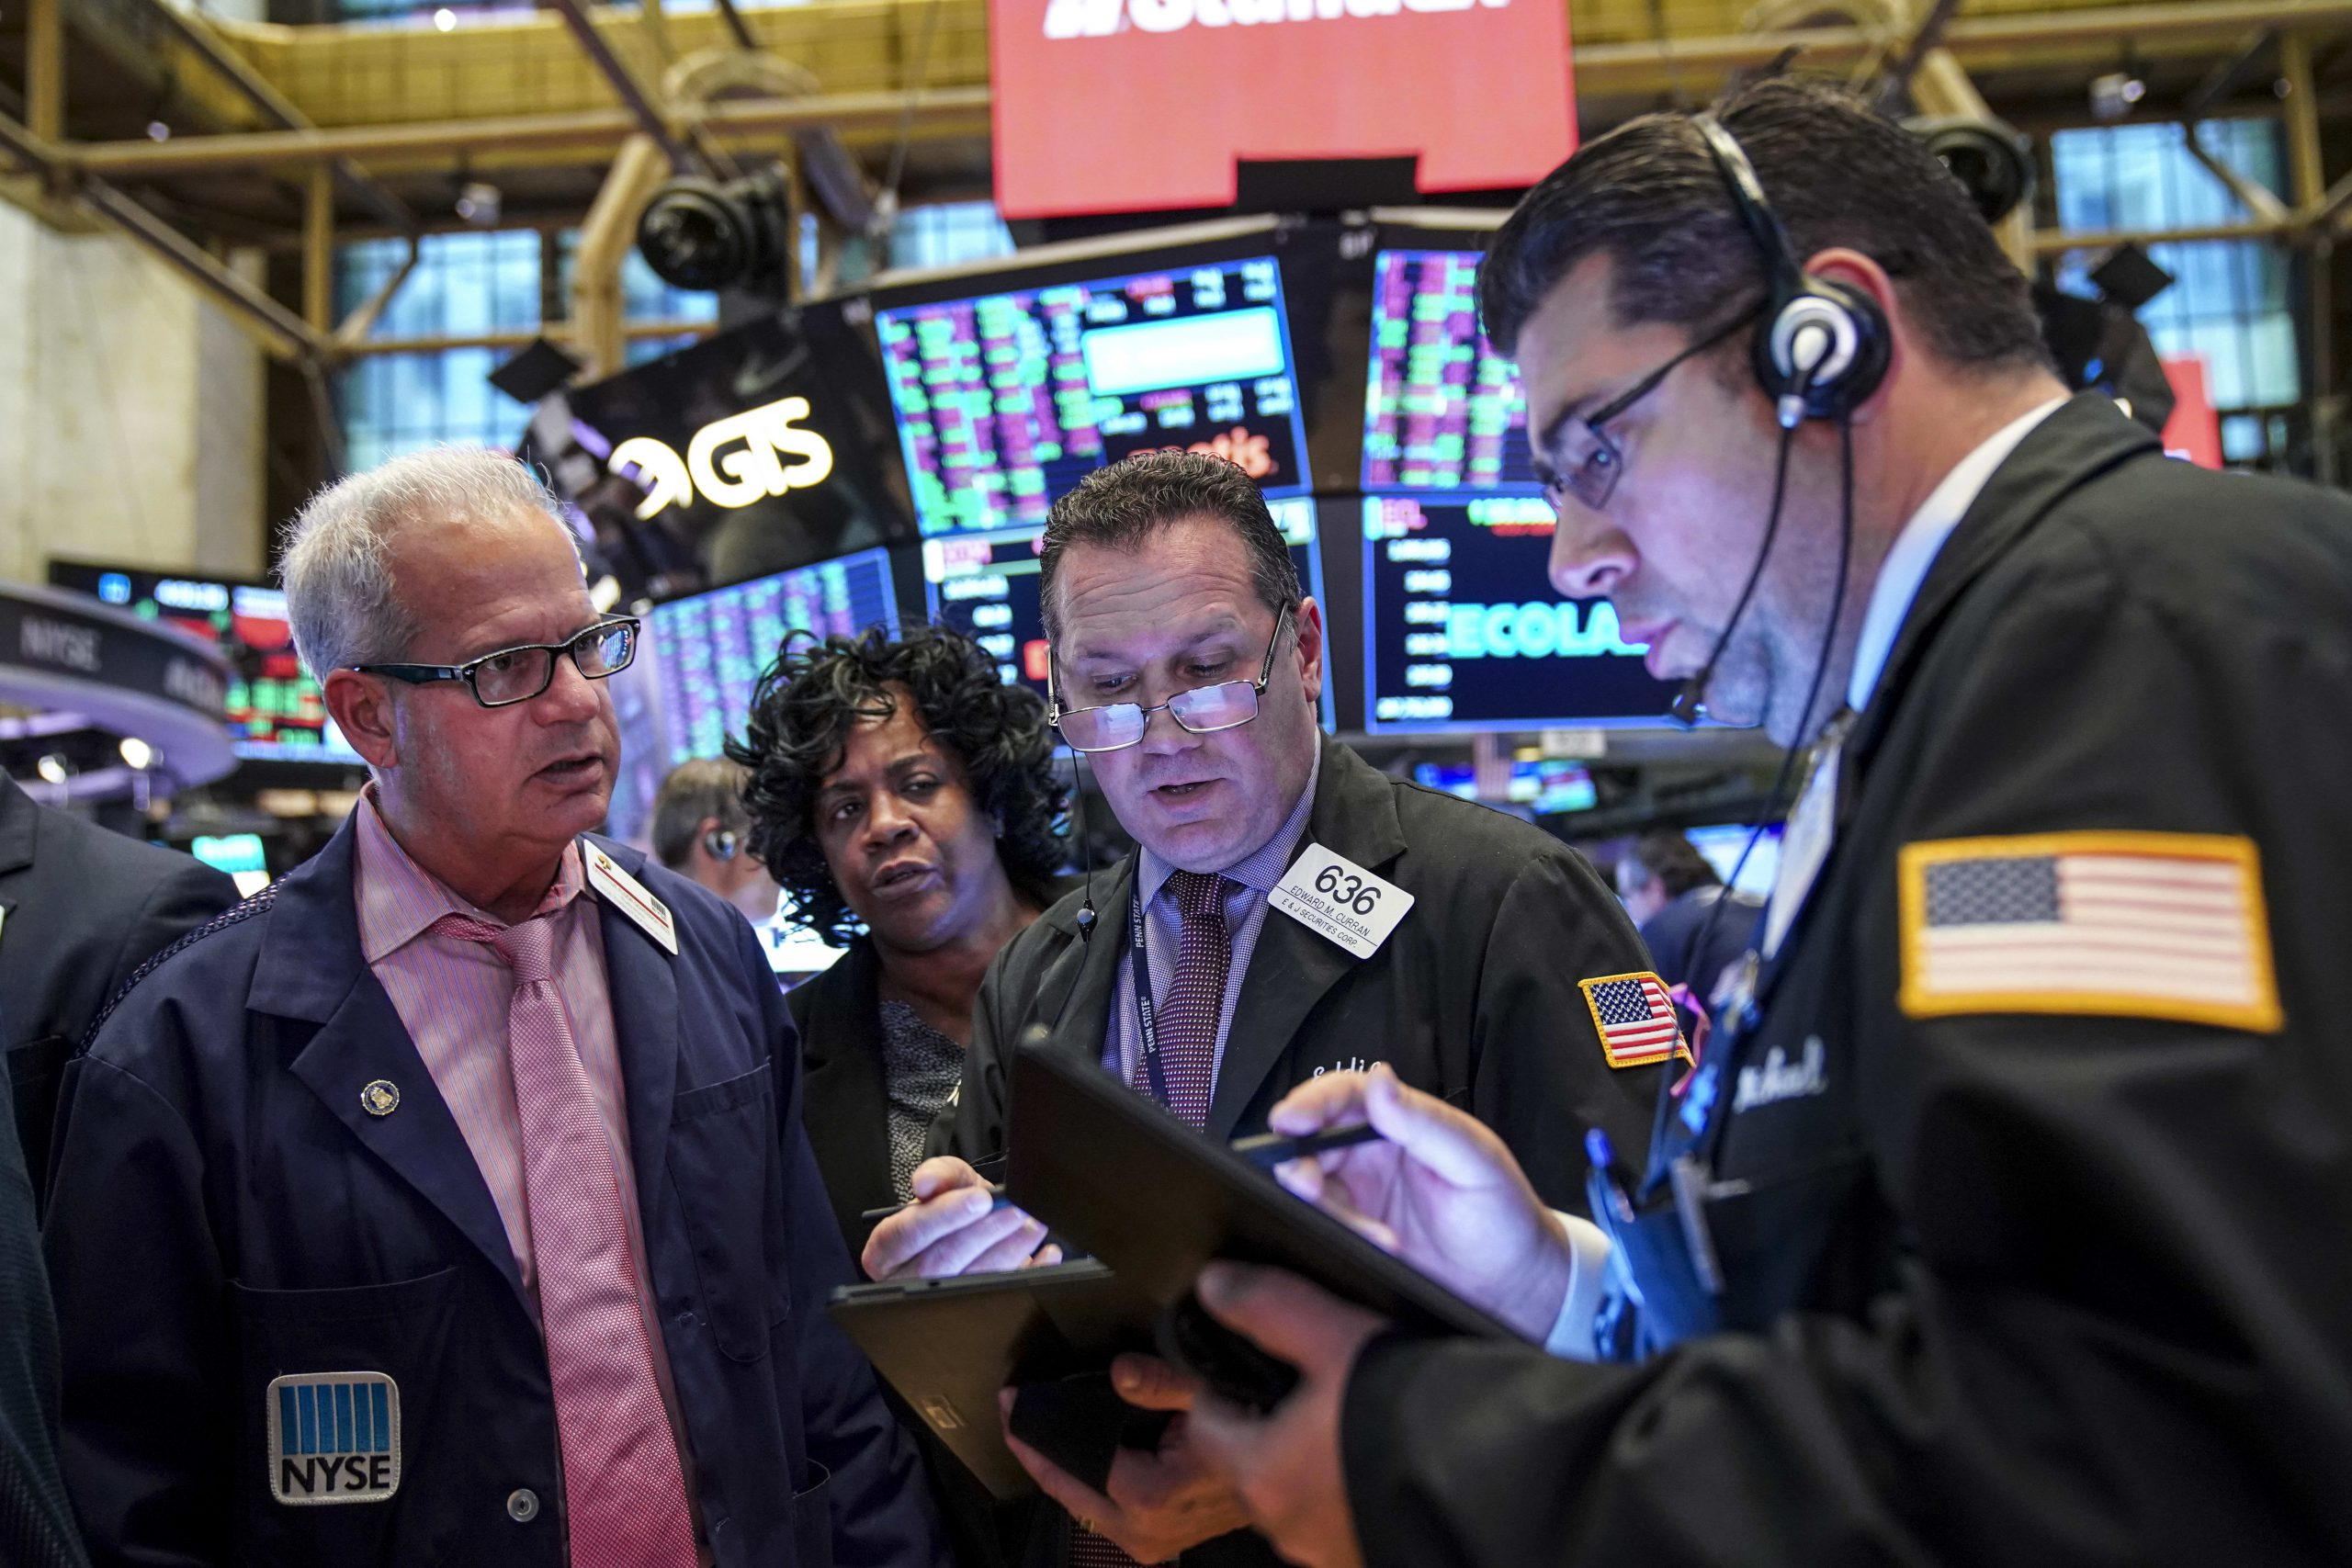 Stock market live updates: More losses ahead, waiting on jobless claims